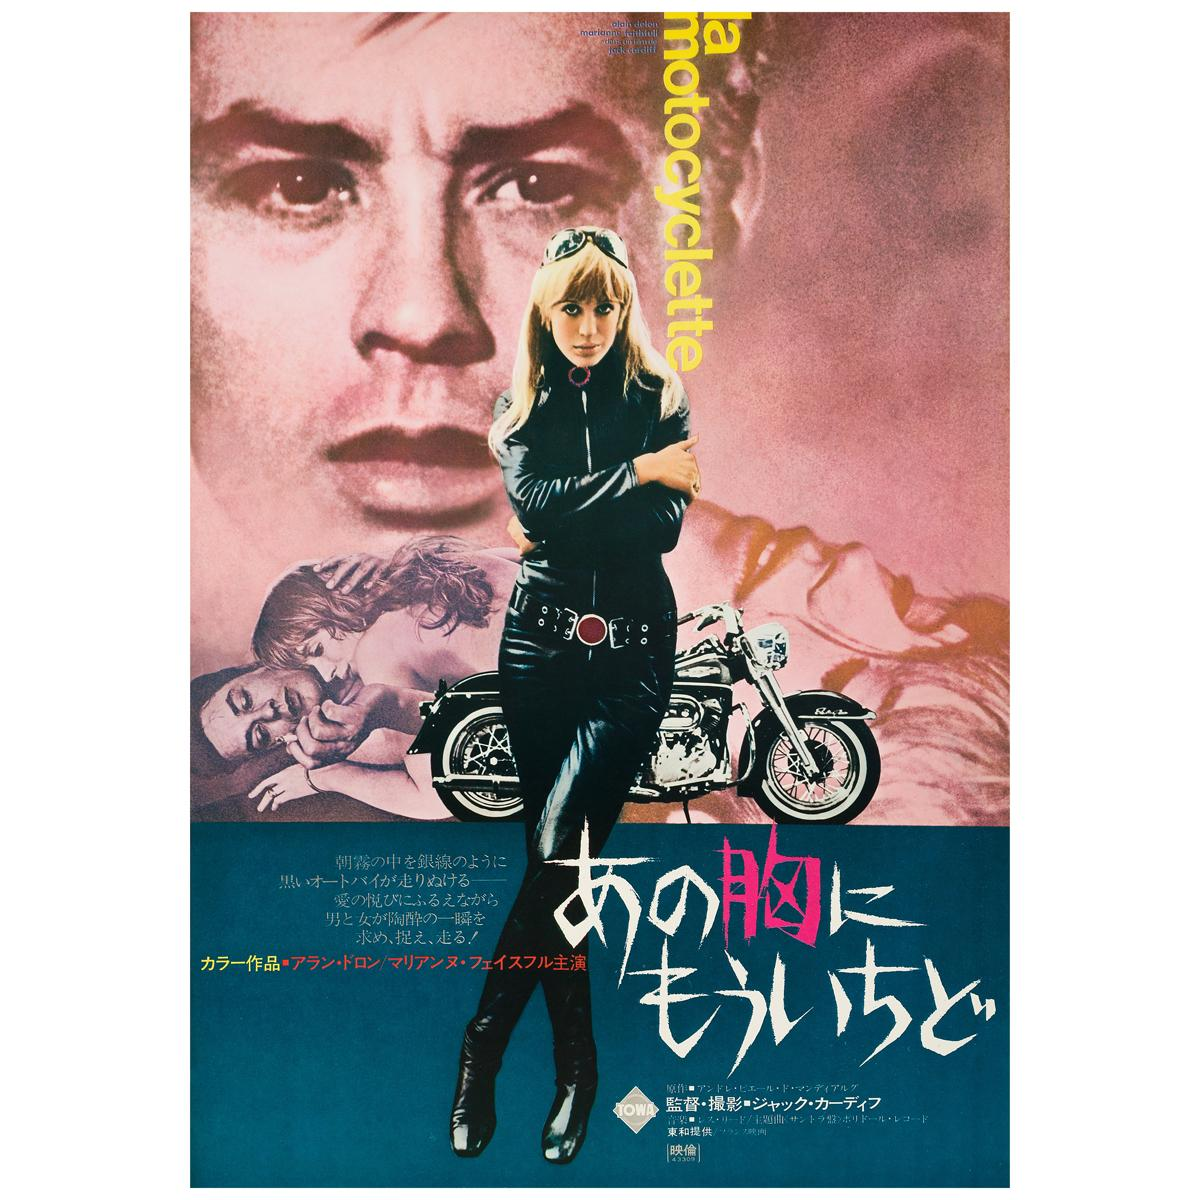 'The Girl on a Motorcycle' Original Vintage Japanese Movie Poster, 1968